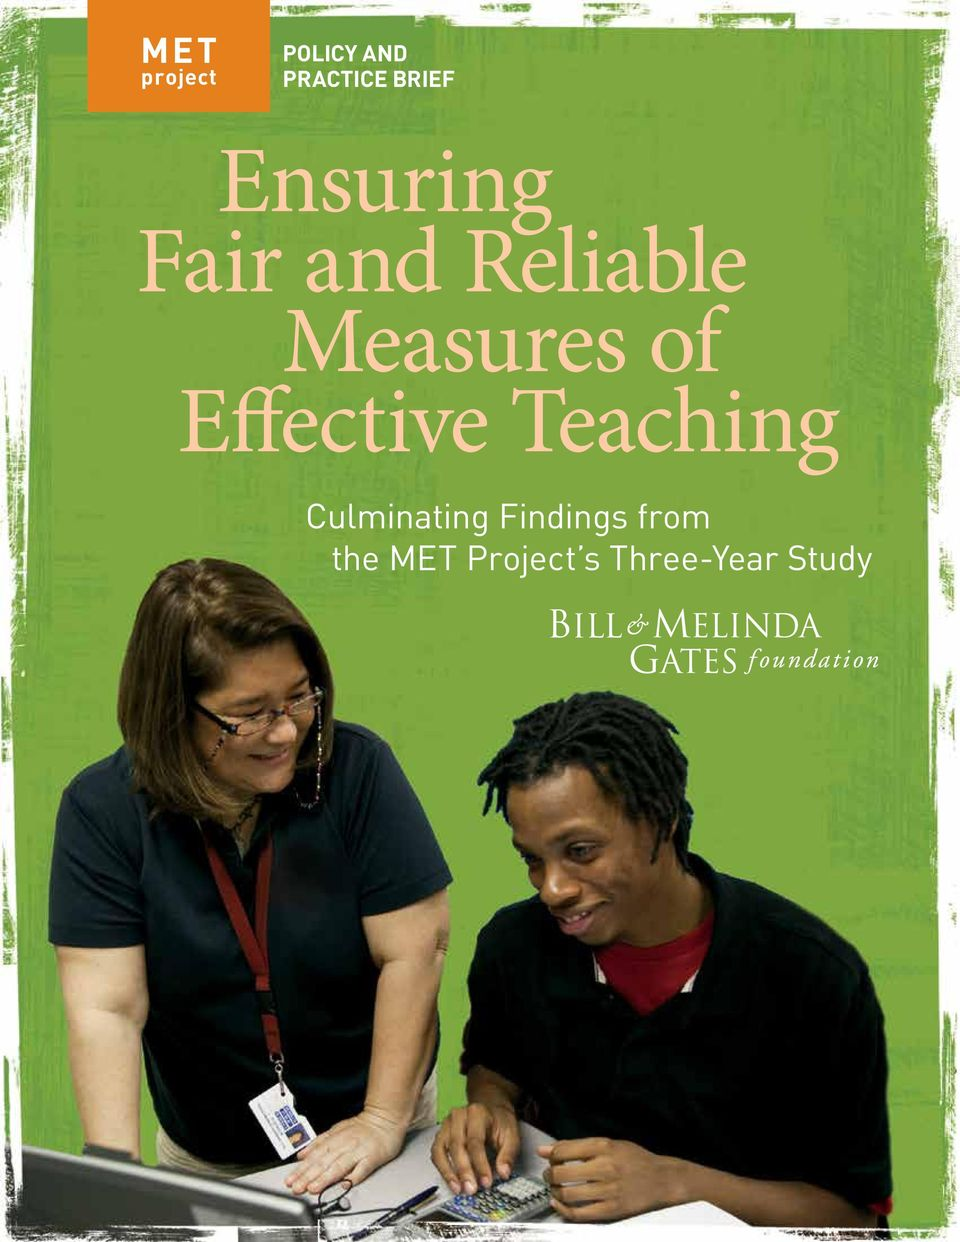 Effective Teaching Culminating